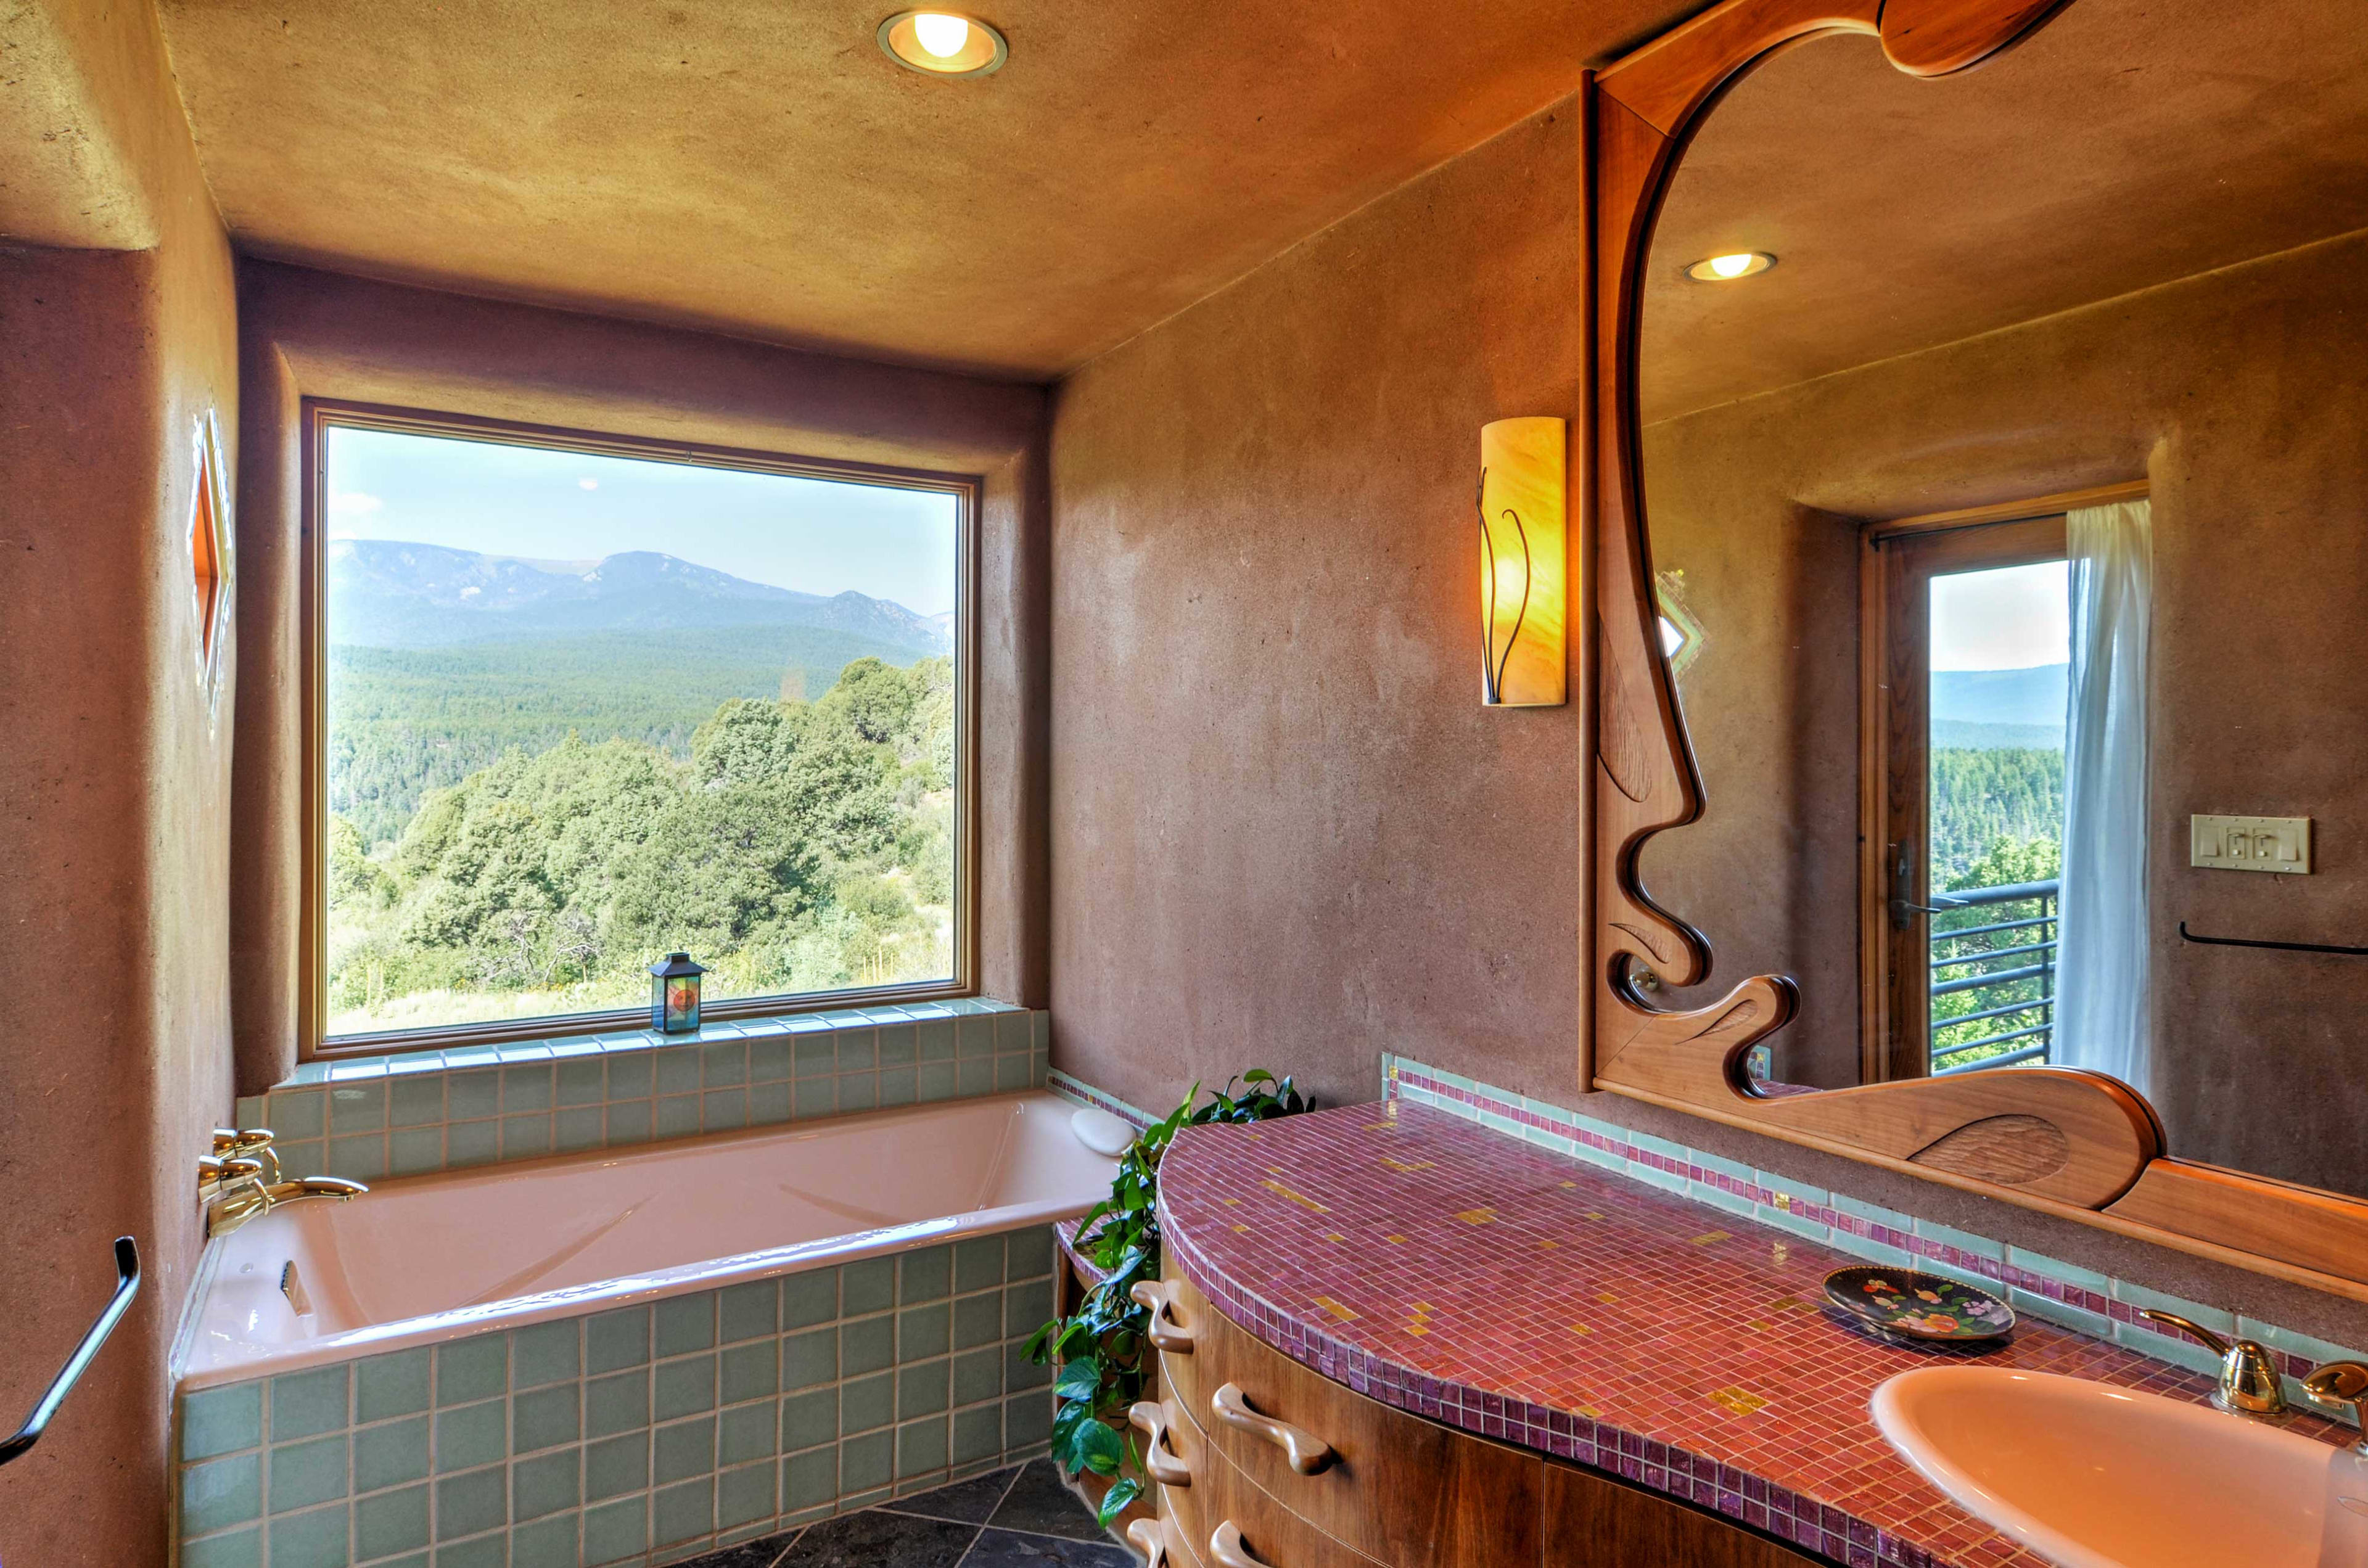 The en-suite bath features a tub with spectacular views.